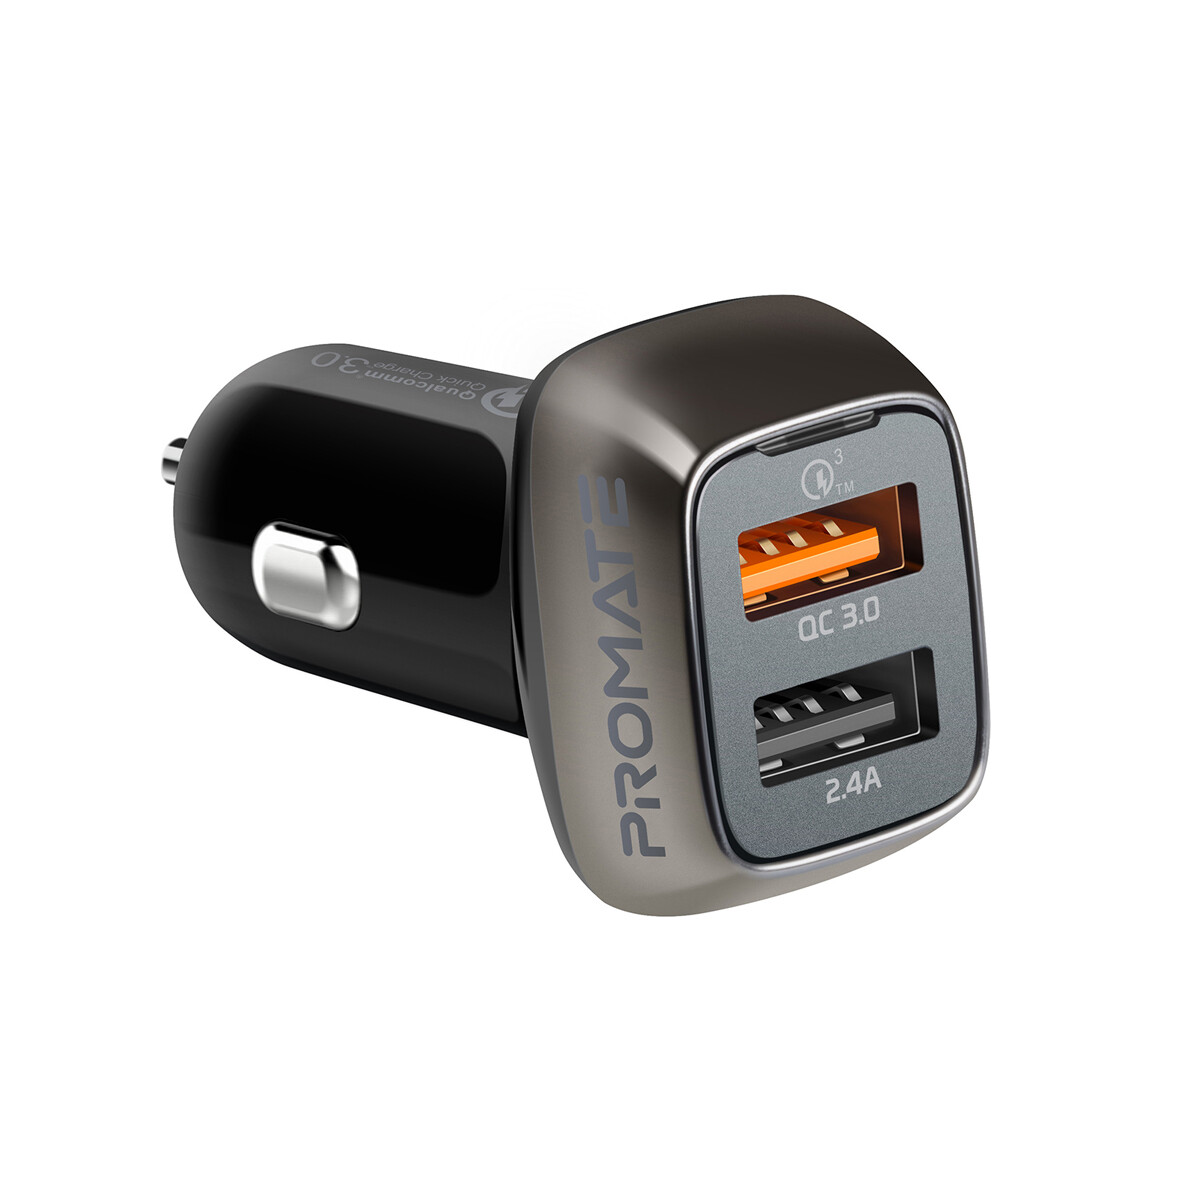 Promate Scud-30 QC 3.0 Car Charger with 30 Watt Dual USB Ports